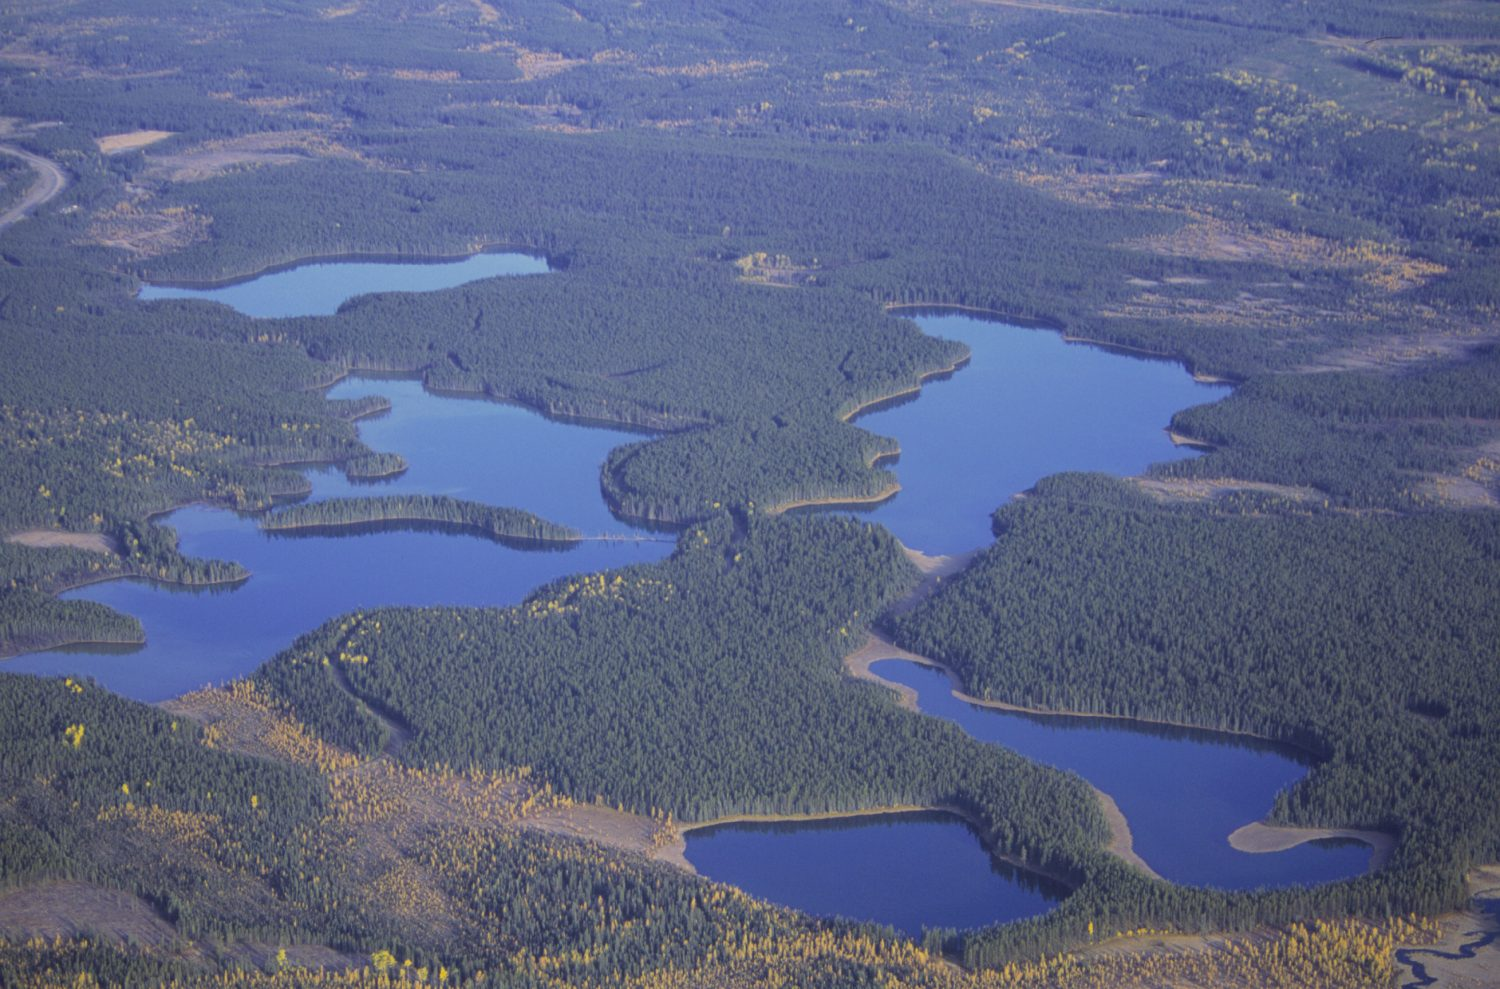 Aerial photo of lakes in a pine forest